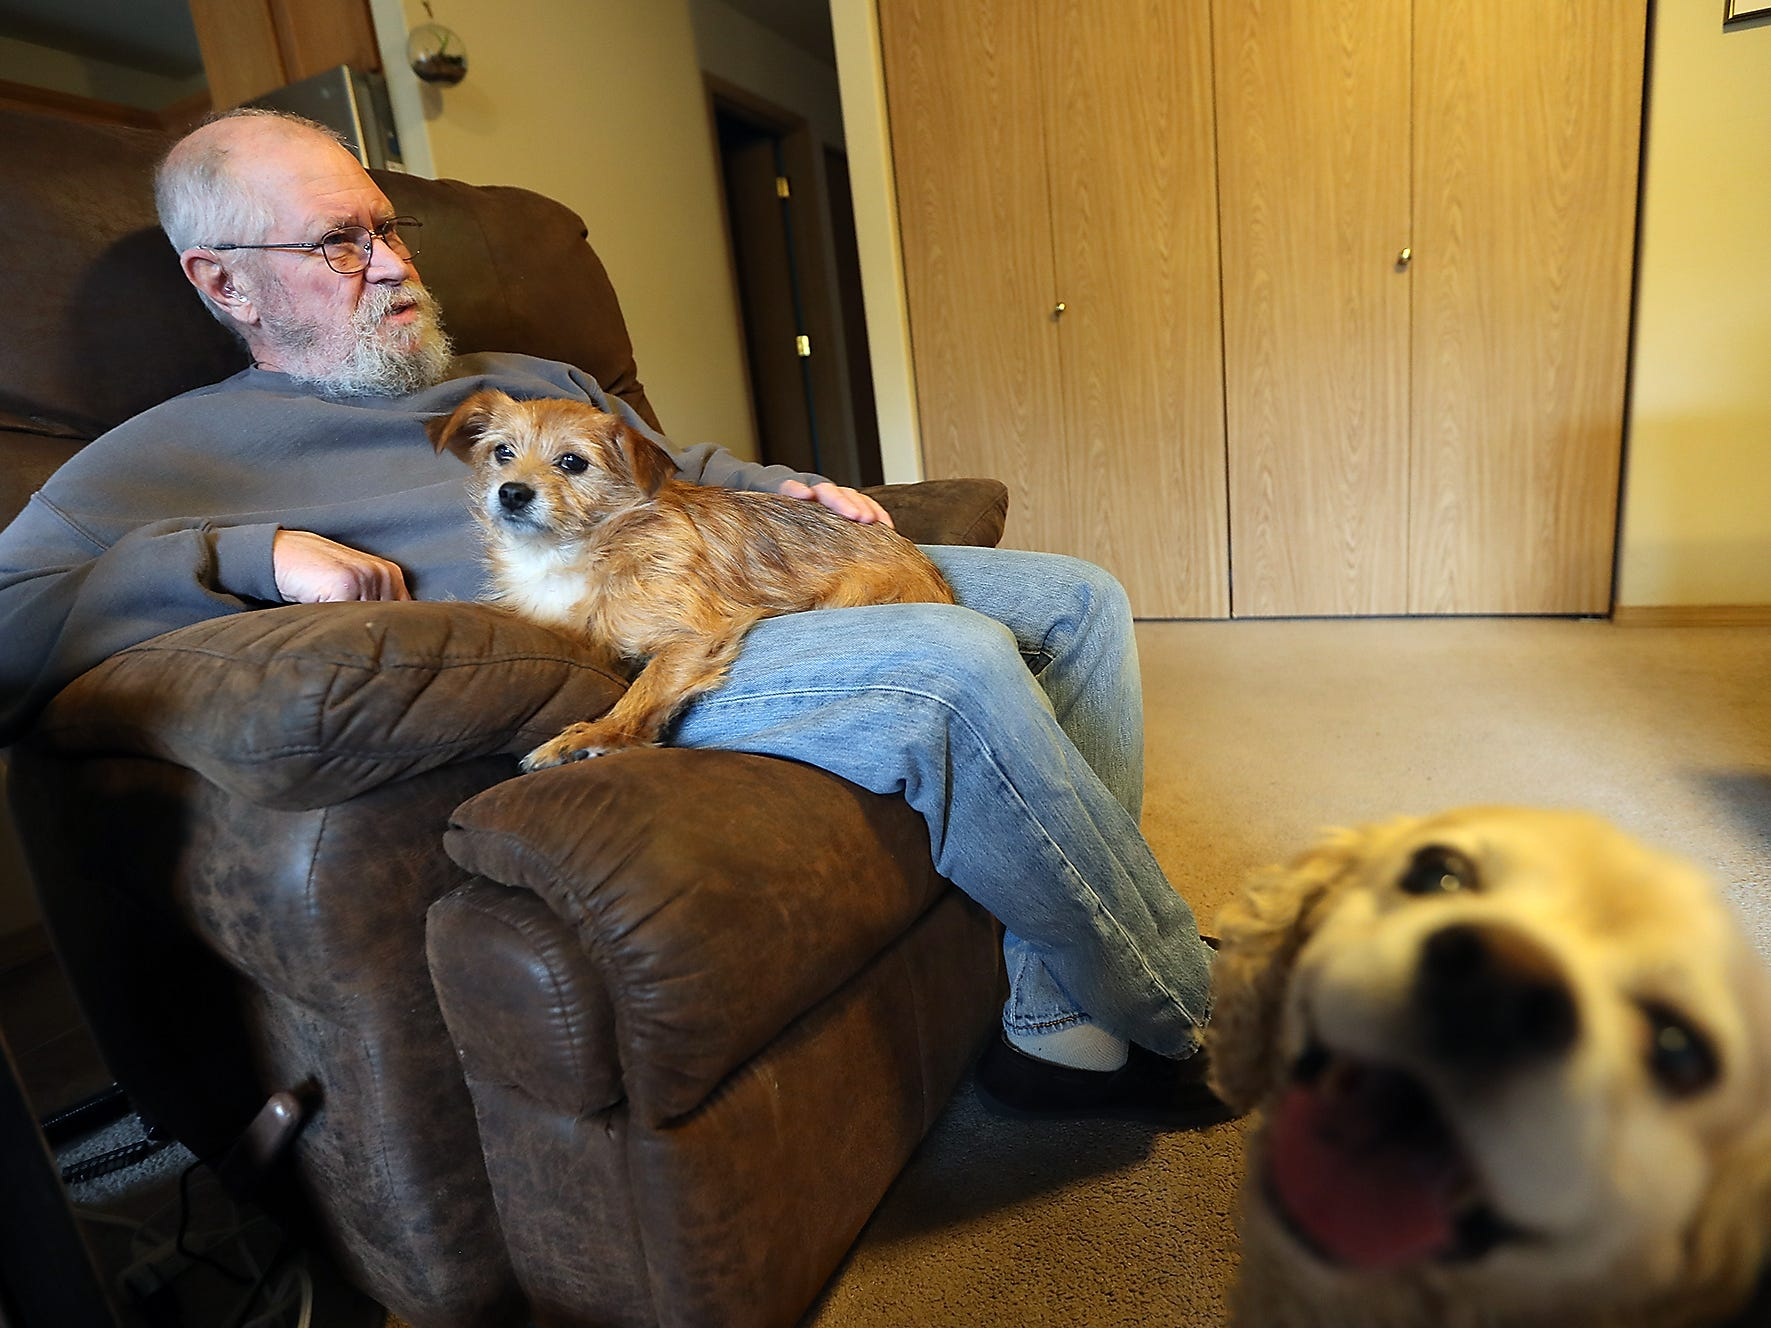 John O'Connor and dog Spanky sit in John's chair as Ladybug photobombs in the foreground at their Port Orchard home on Thursday, December 20, 2018.